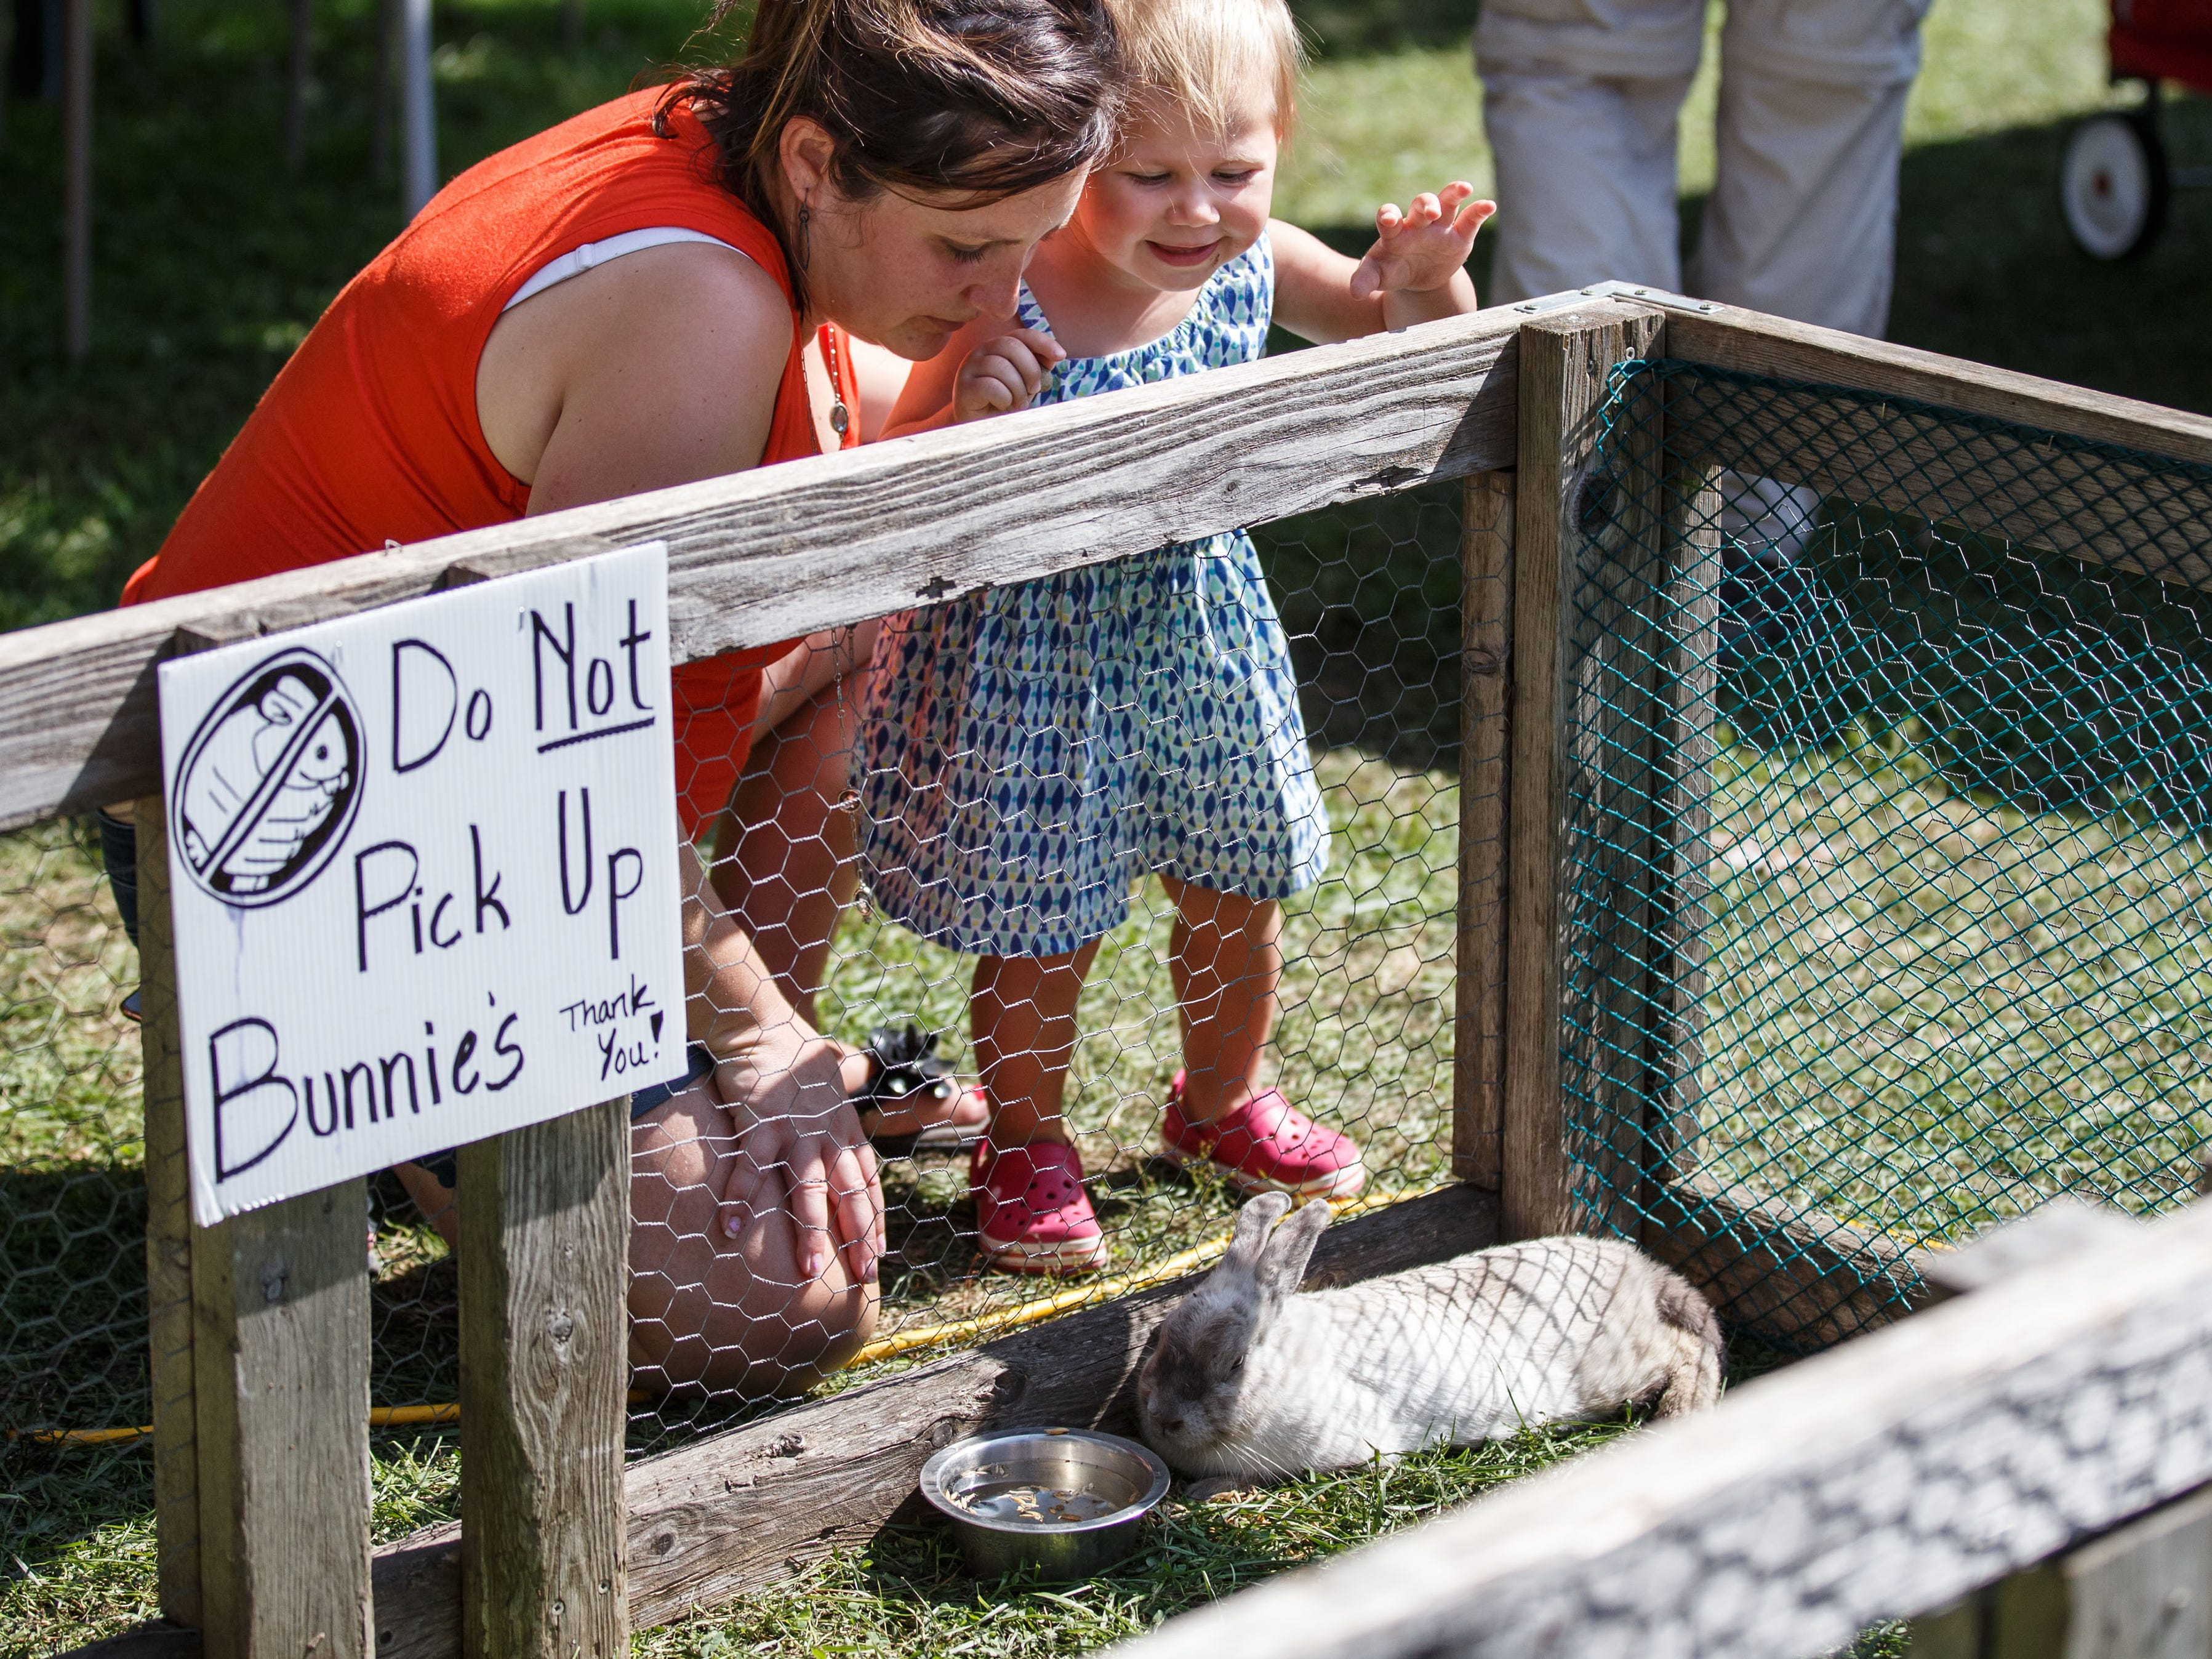 Two-year-old Harper Sutkiewicz and Jena Fleischman, both of Waukesha, visit the Cedar Creek Farm petting zoo during the 46th annual Wine & Harvest Festival in downtown Cedarburg on Sunday, Sept. 16, 2018.